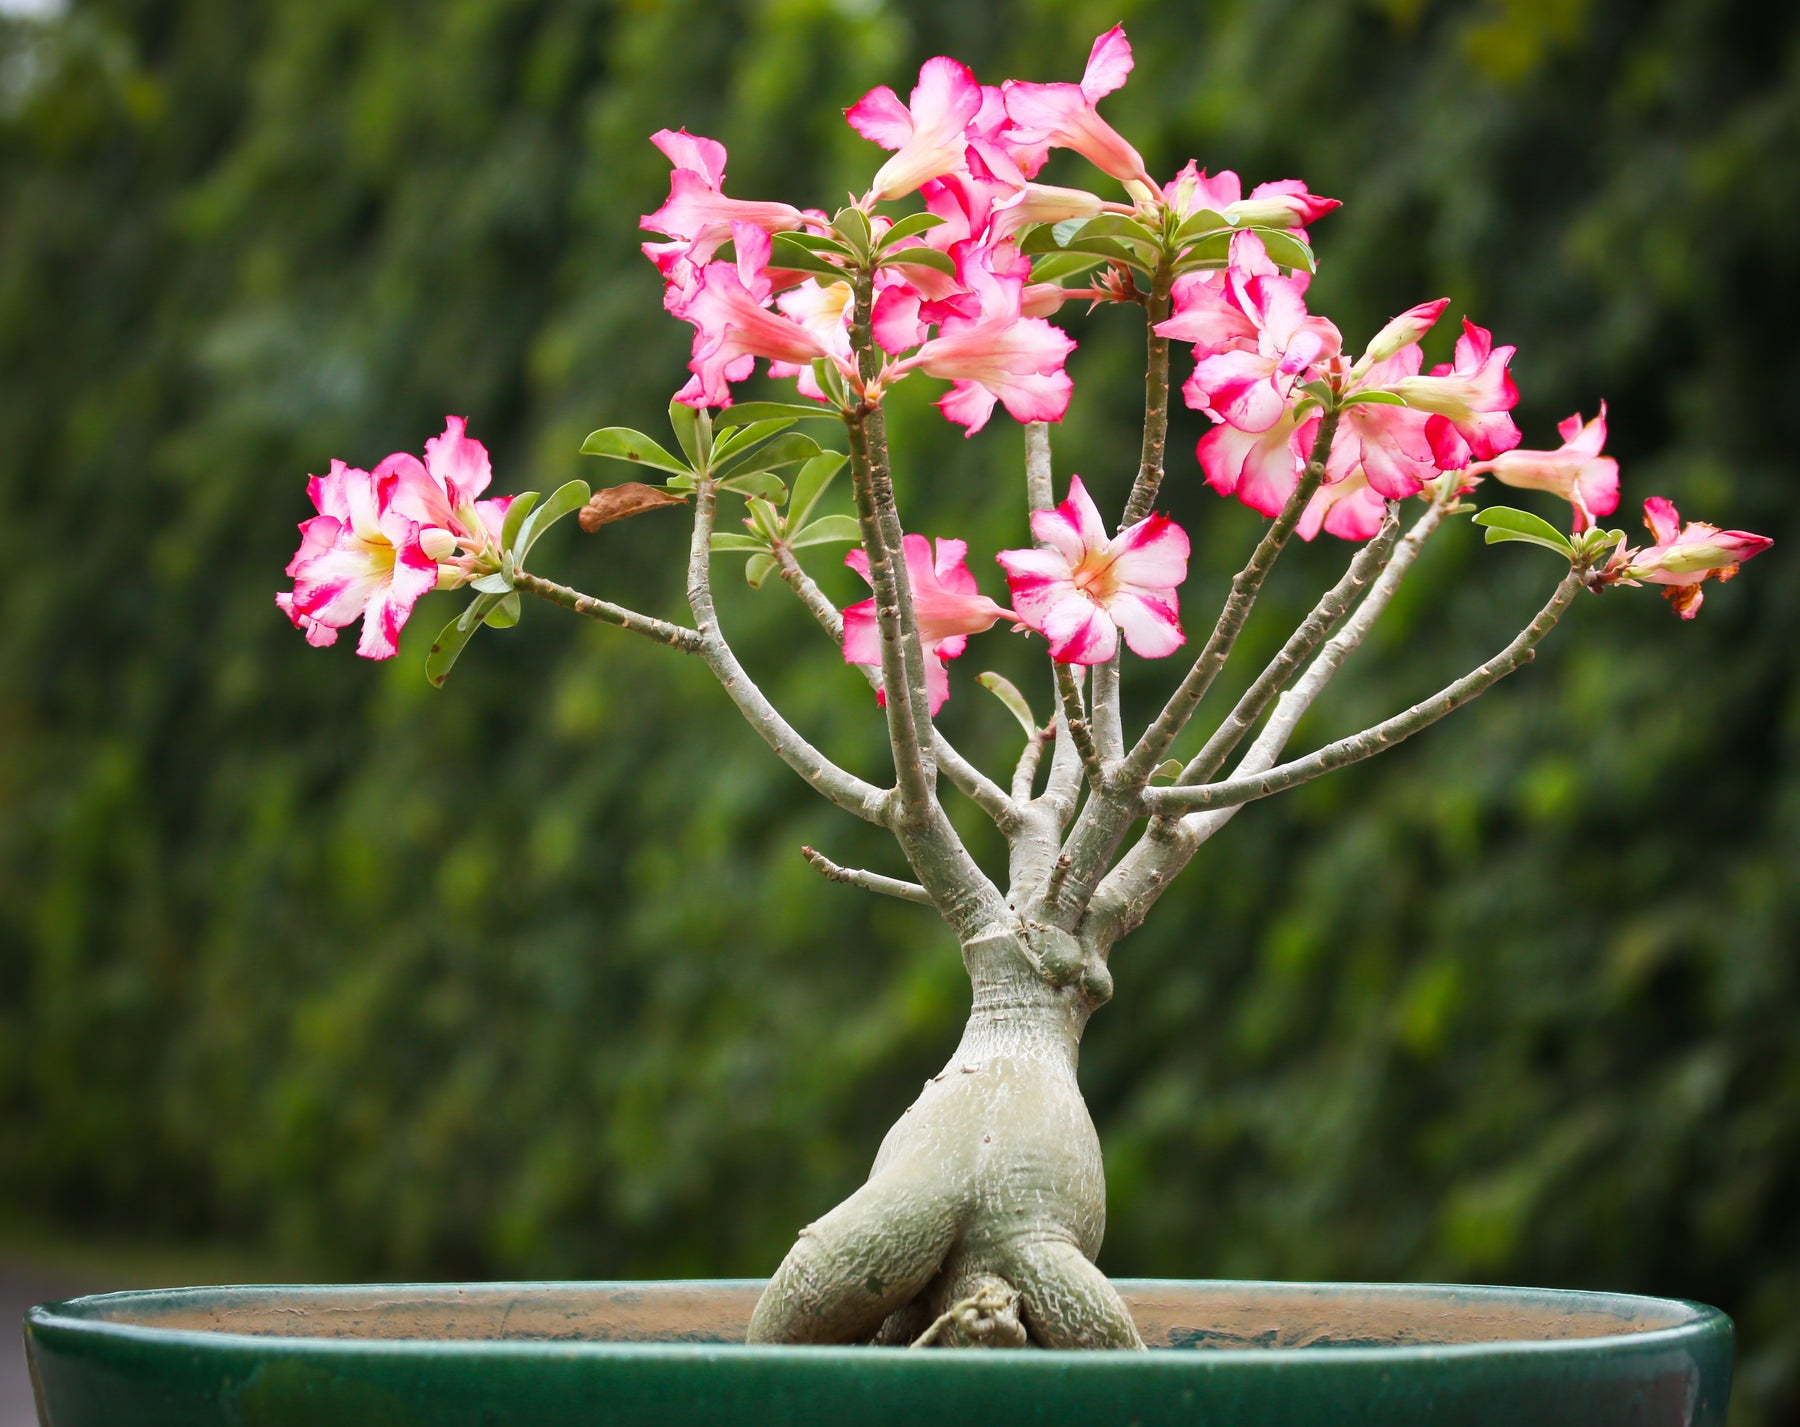 Adenium Care Guide: Essential Care Instructions